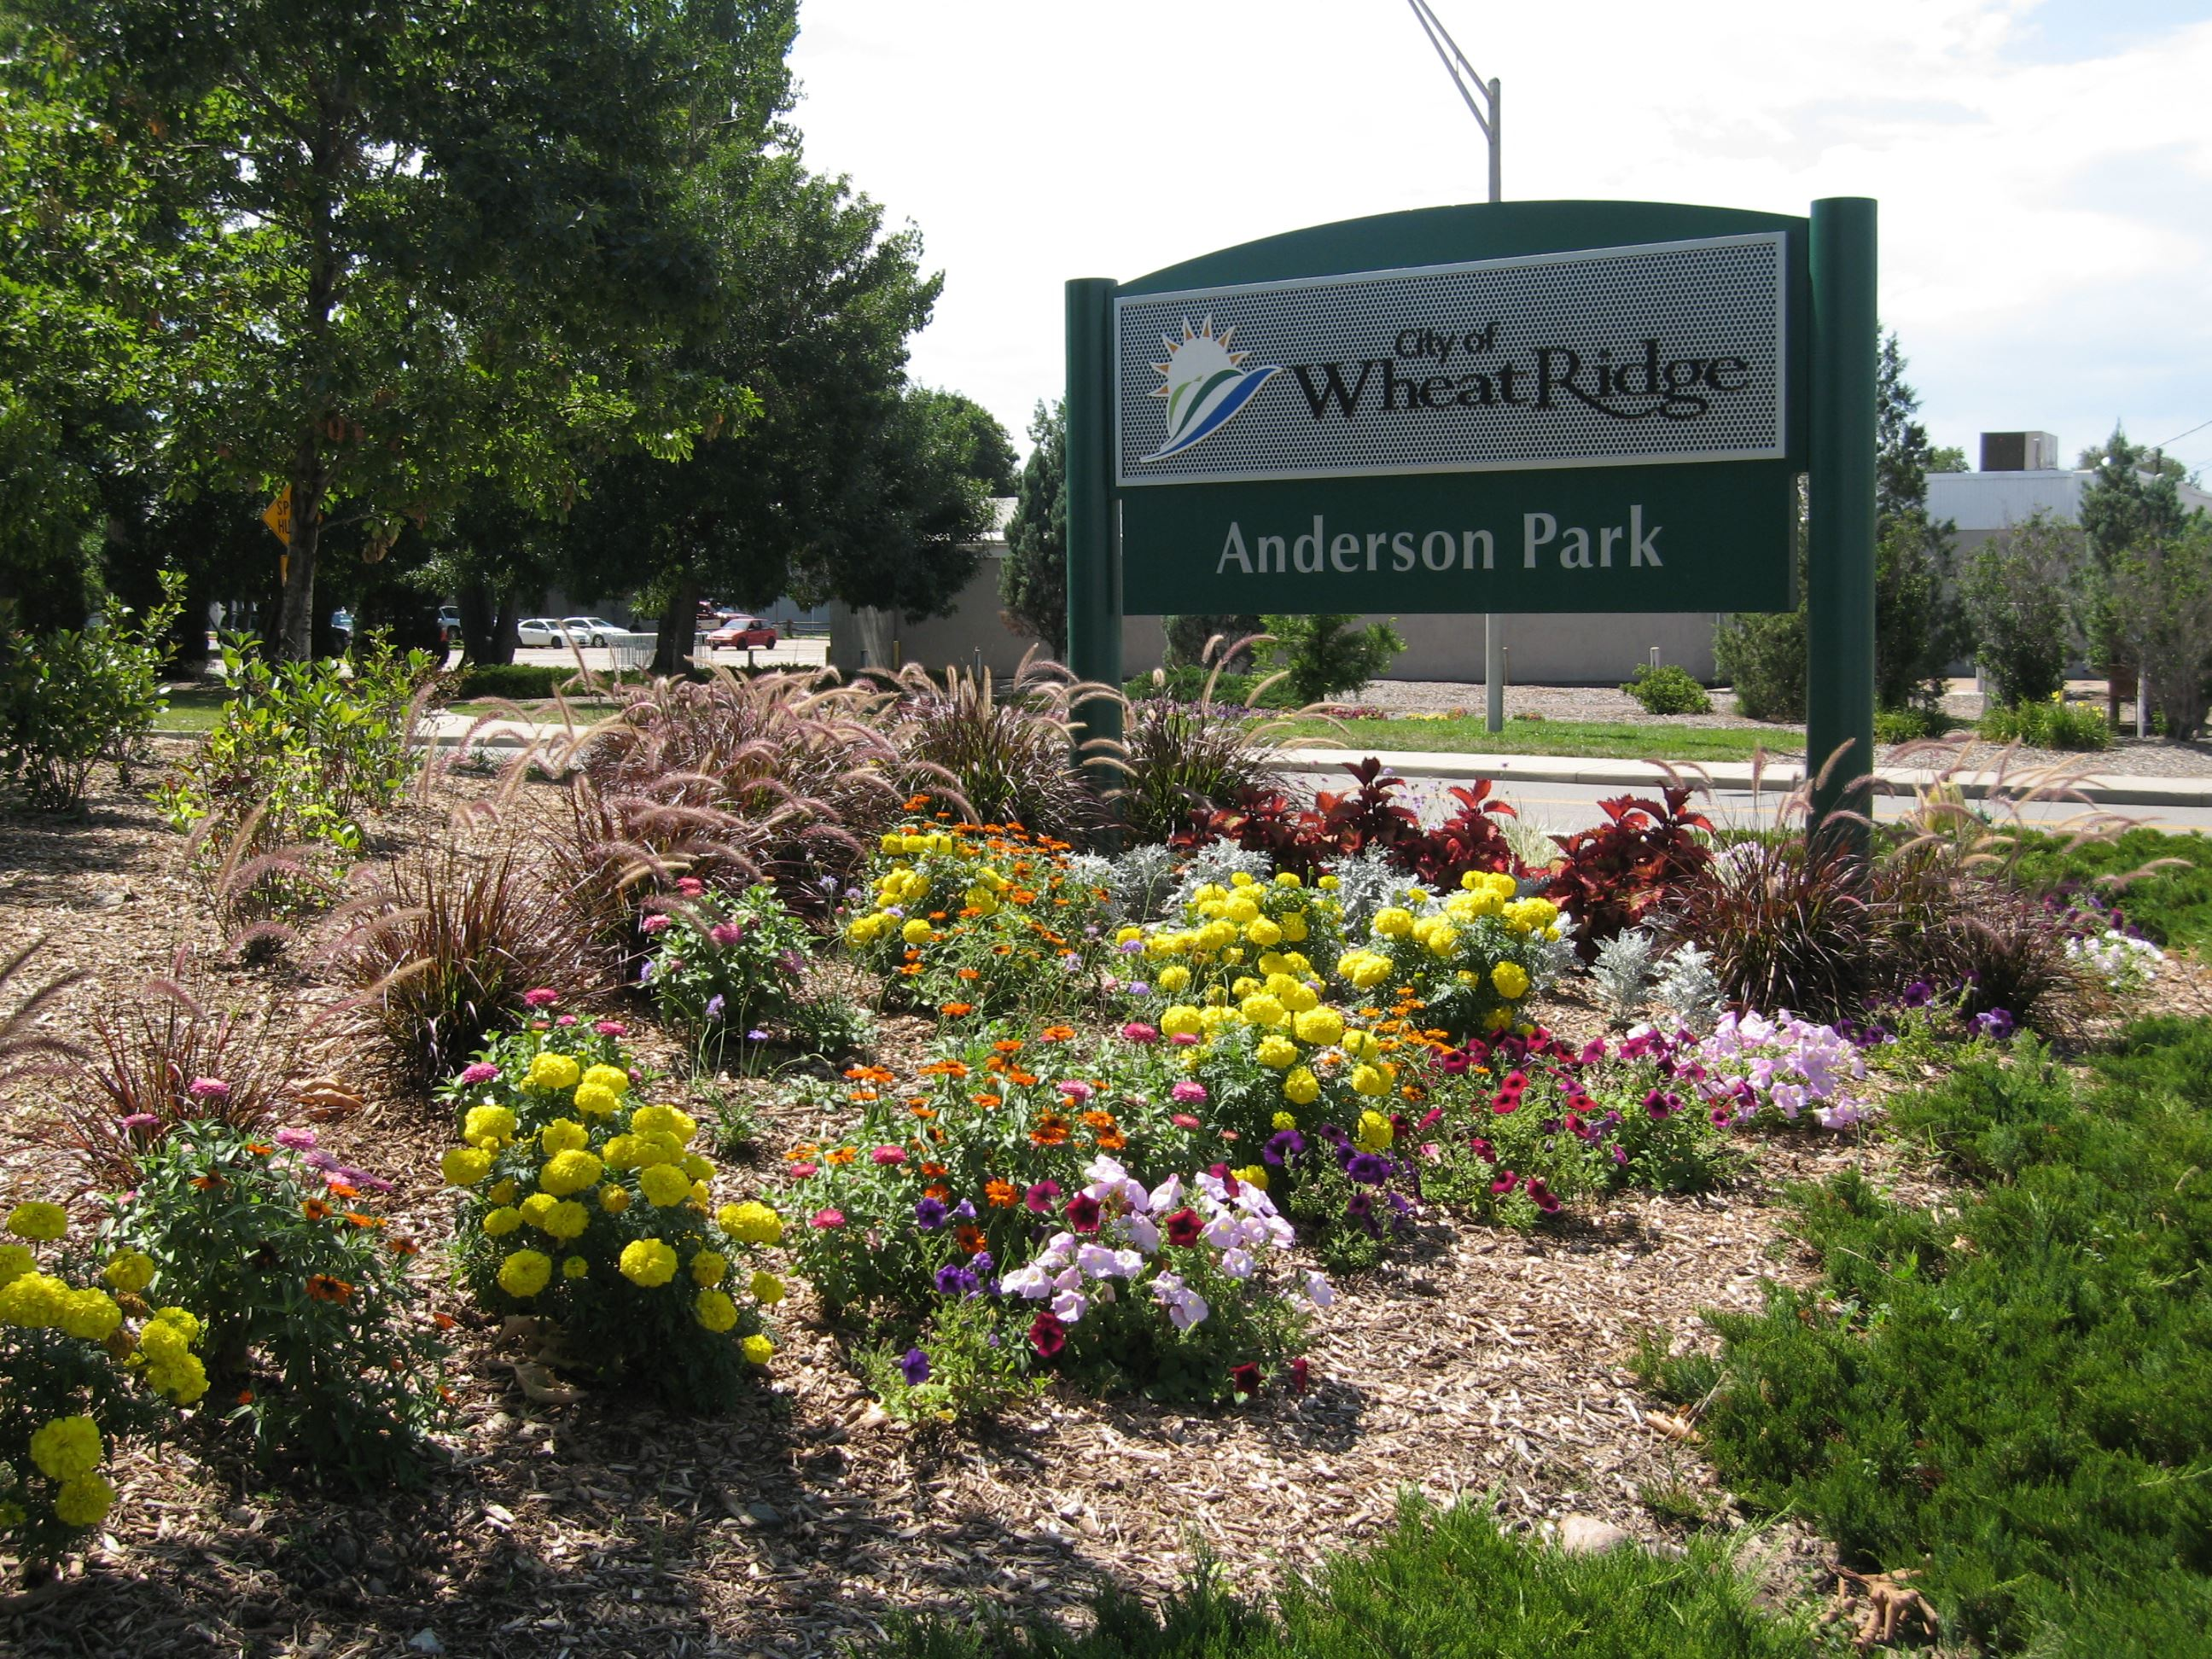 Anderson Park entry sign